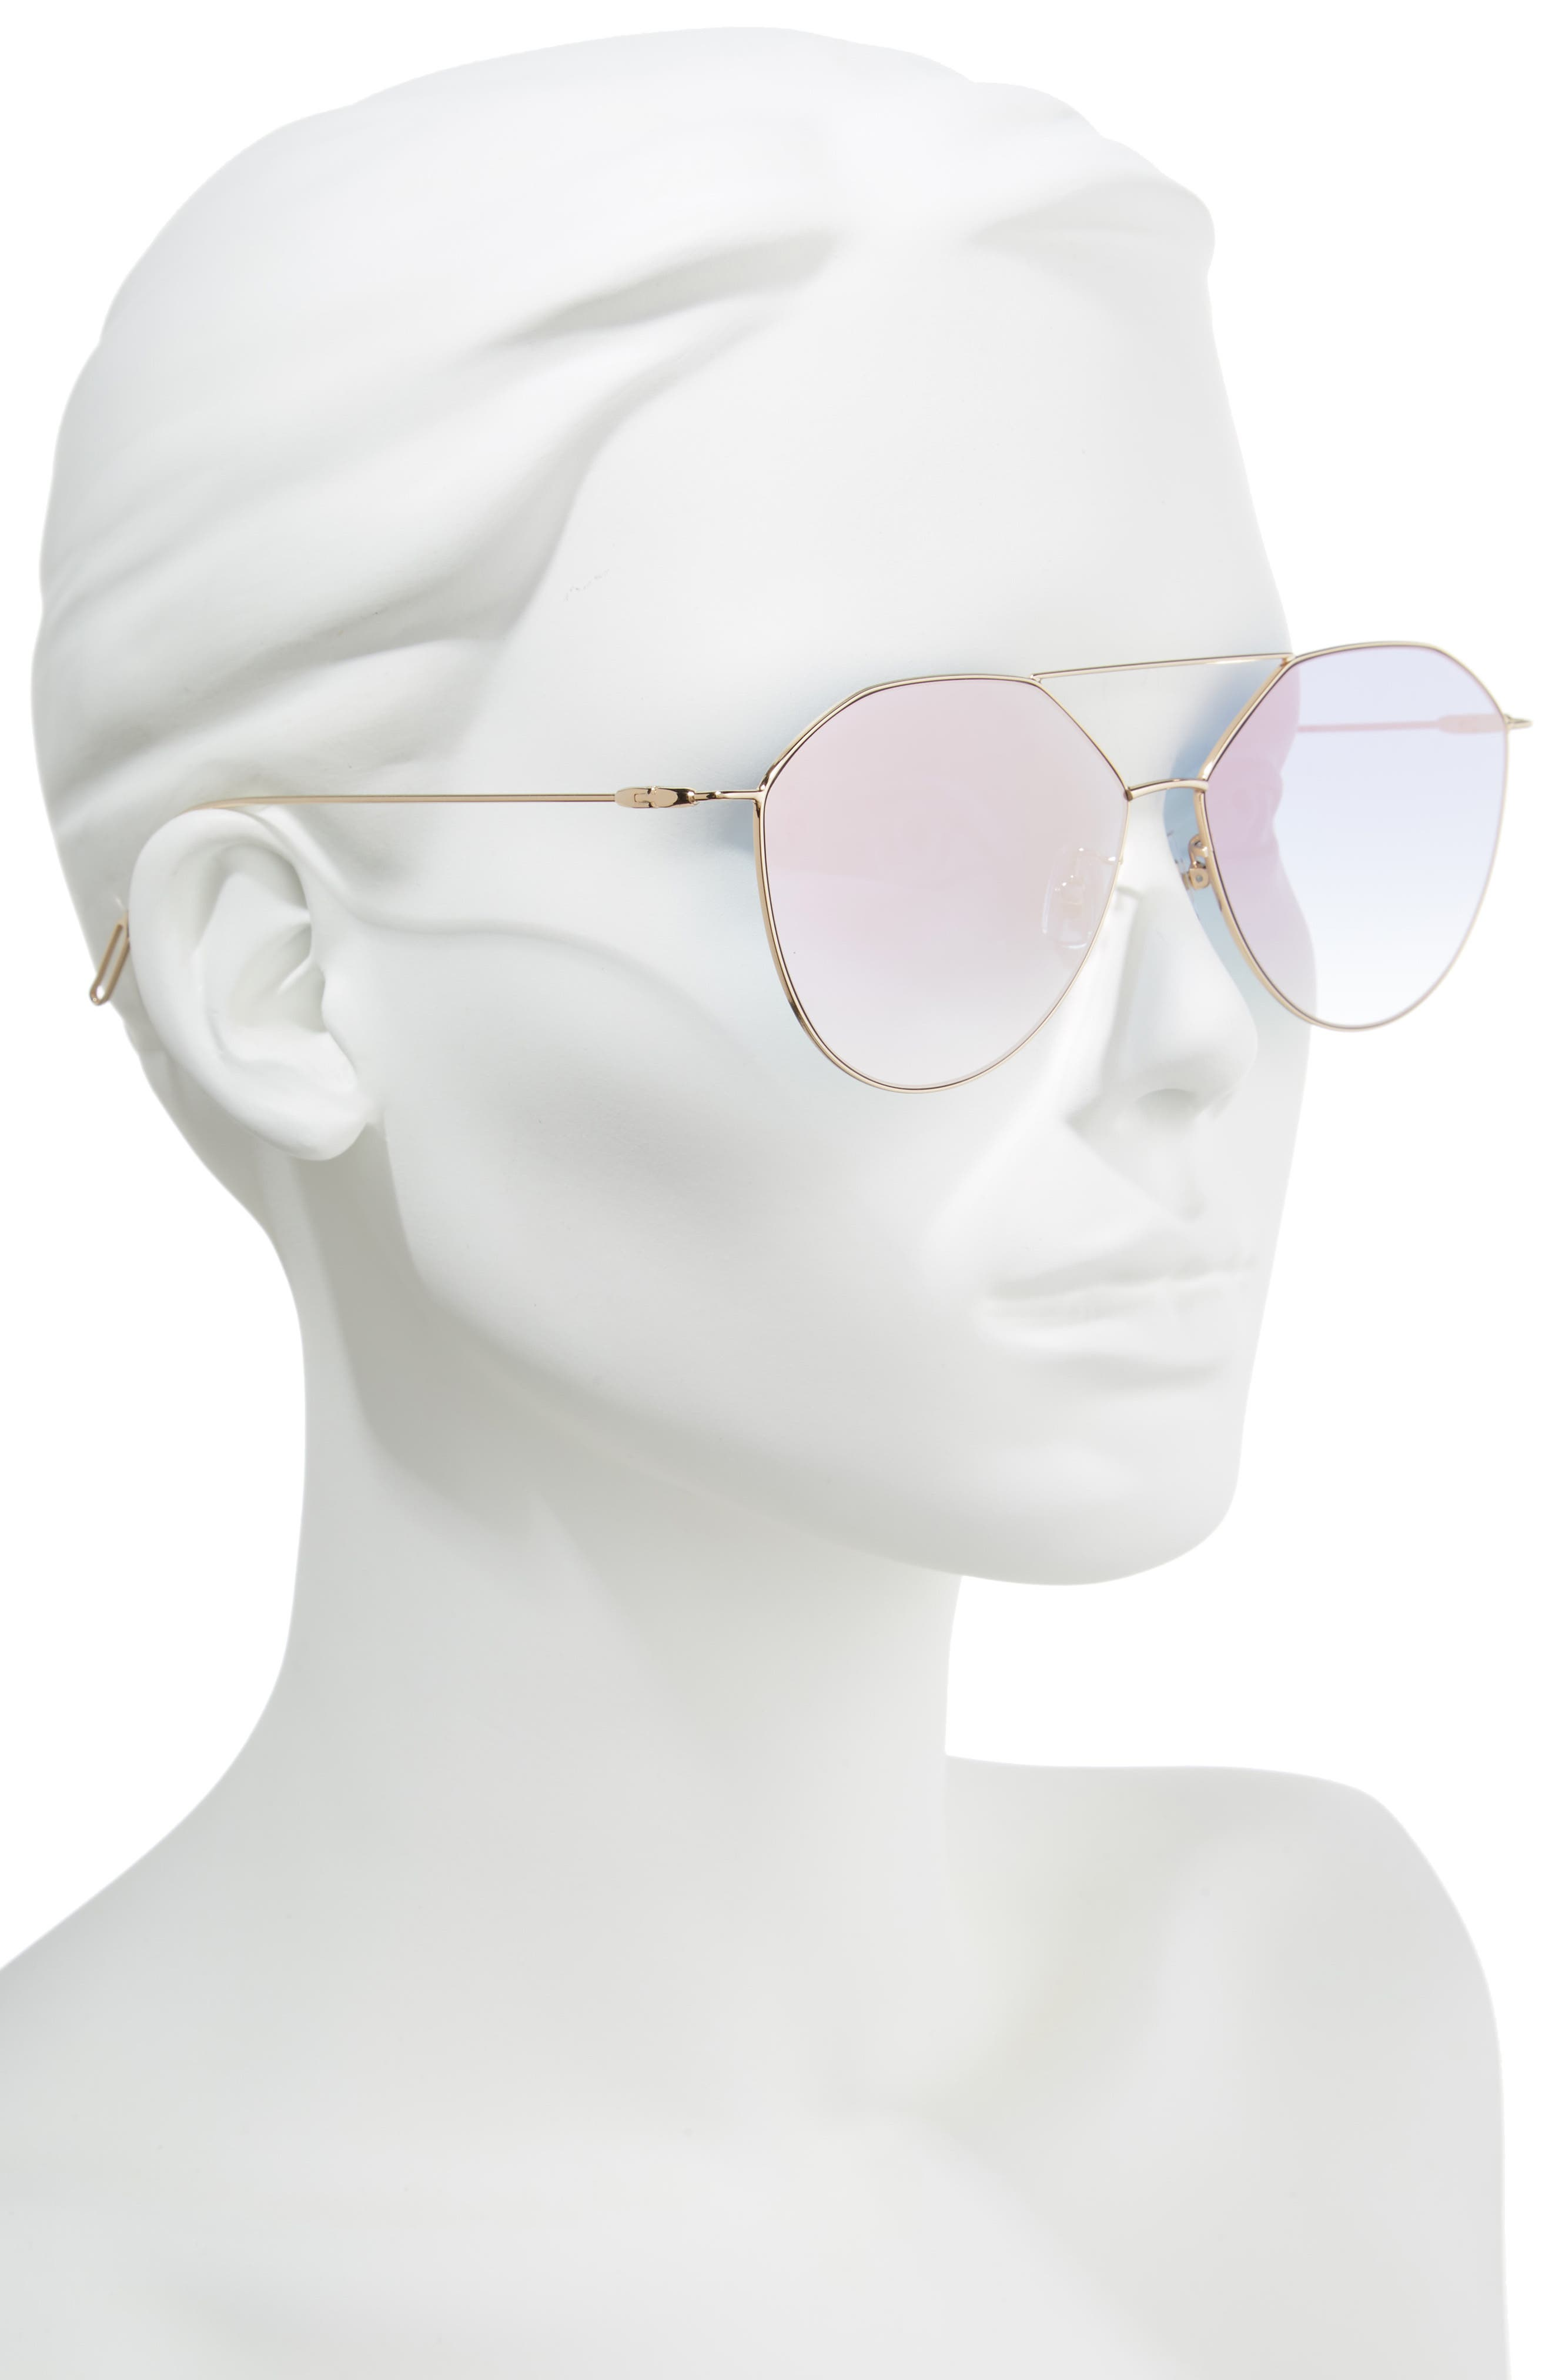 55mm Metal Aviator Sunglasses,                             Alternate thumbnail 2, color,                             GOLD /PINK MIRROR